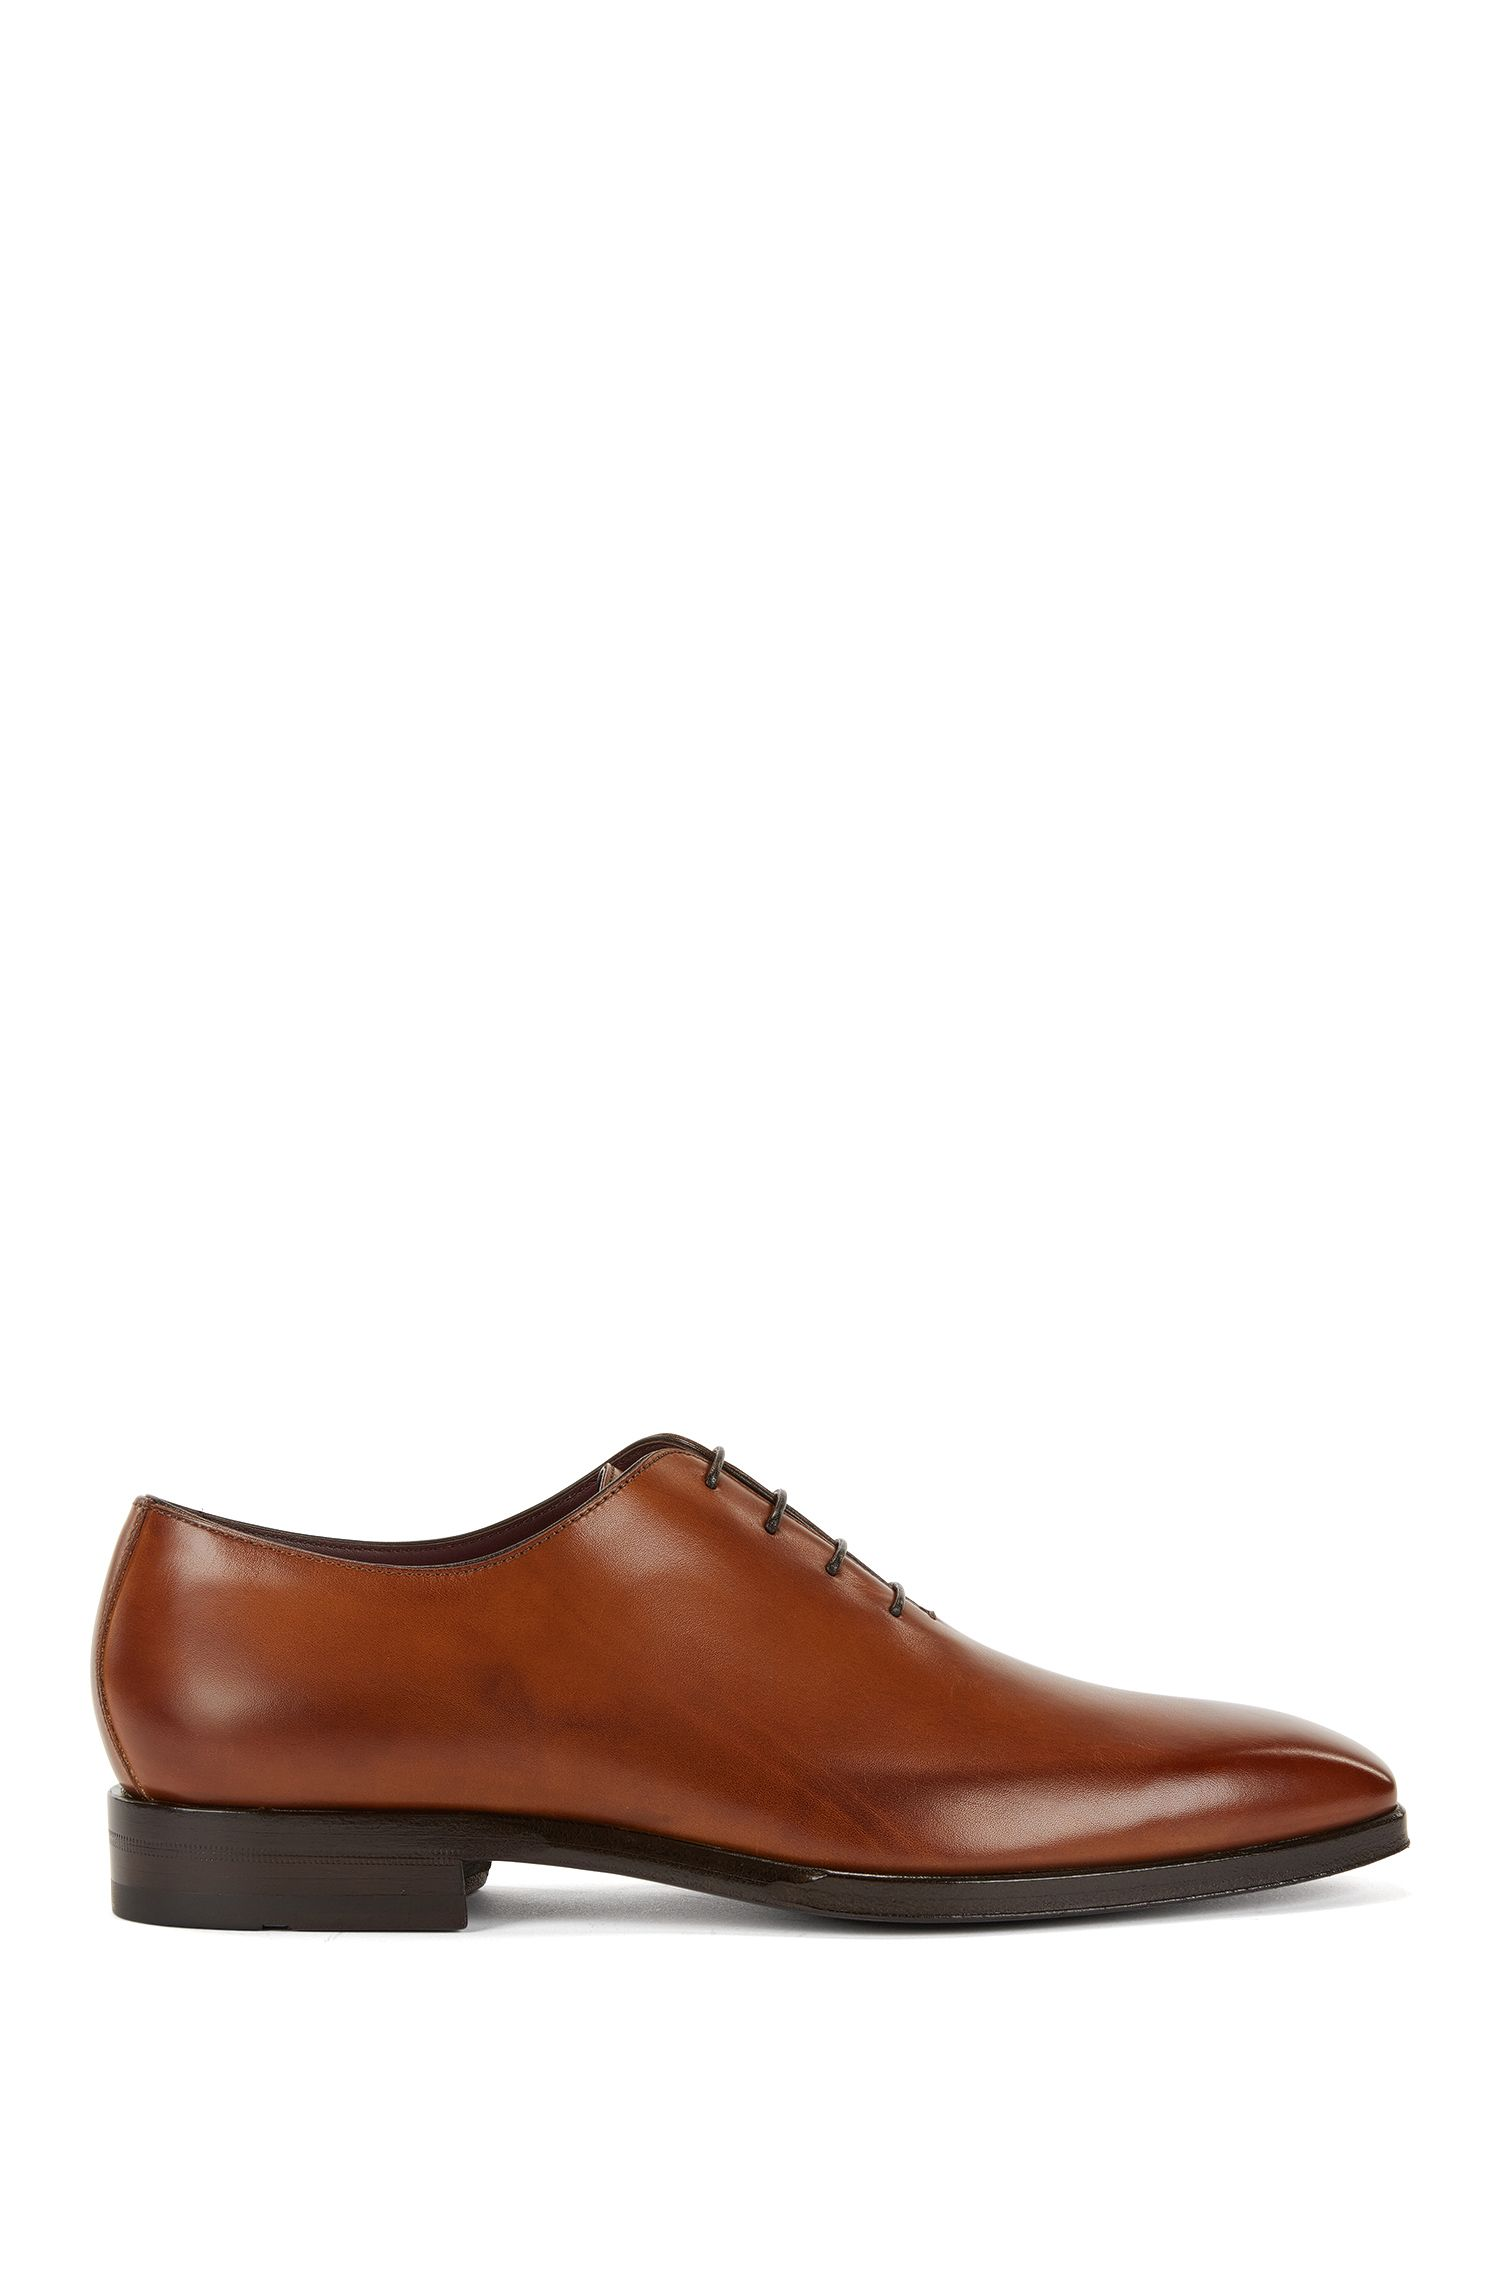 Oxford shoes in burnished leather